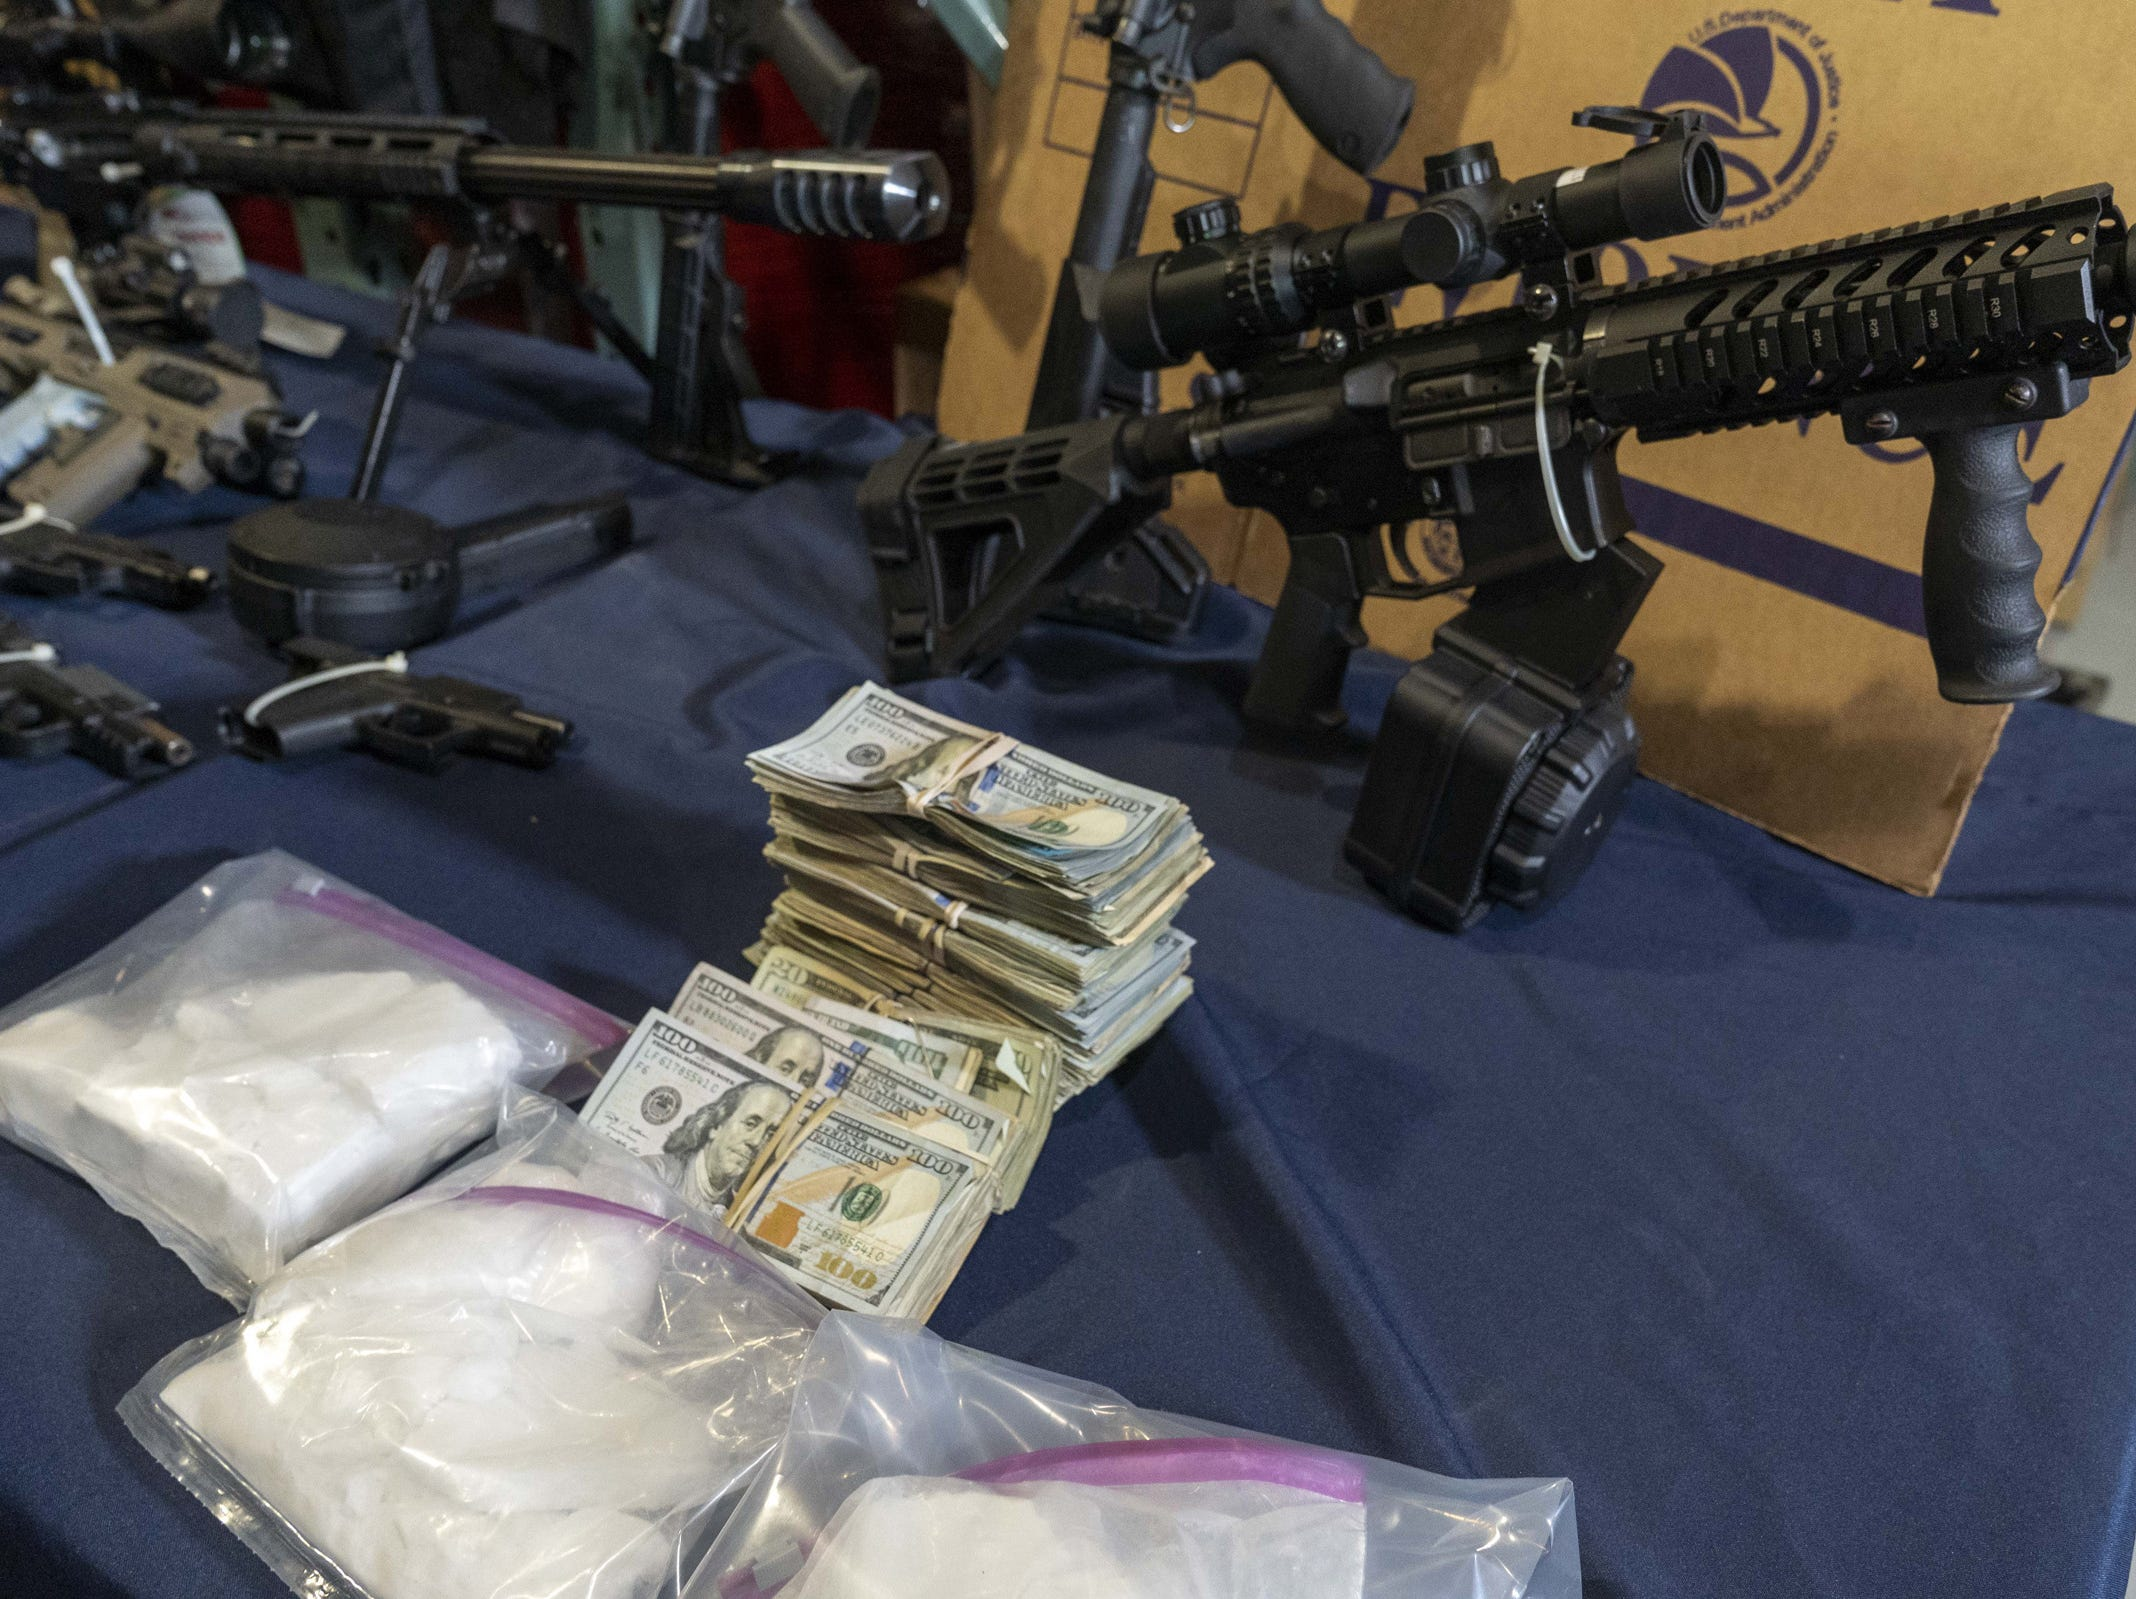 DEA agents show stored drugs, weapons and cash at a facility in the Phoenix area on March 5, 2019.